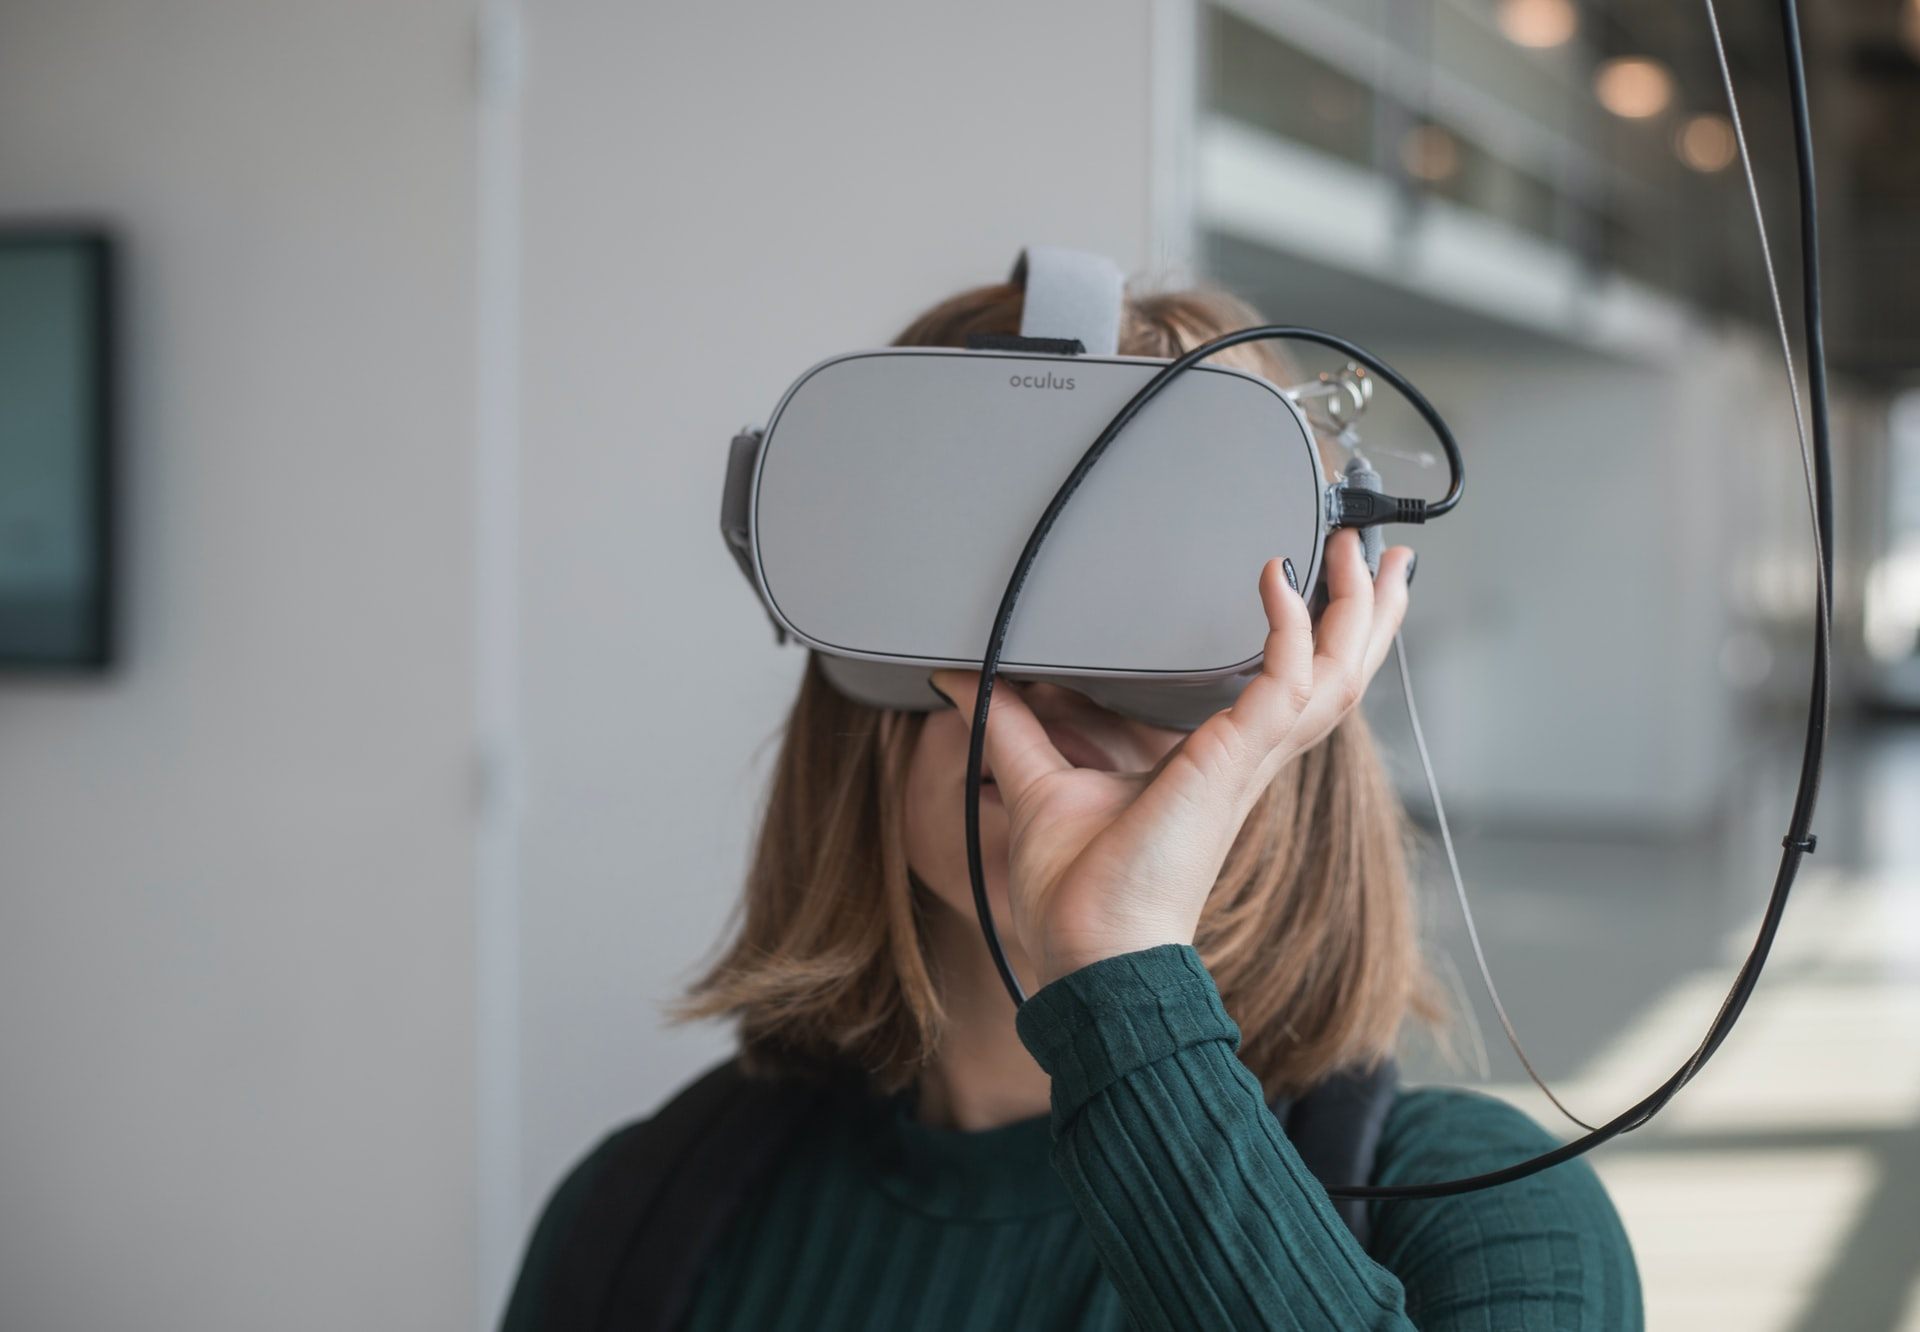 Startups Looking To Capitalize On The Current Market Trends Using AR